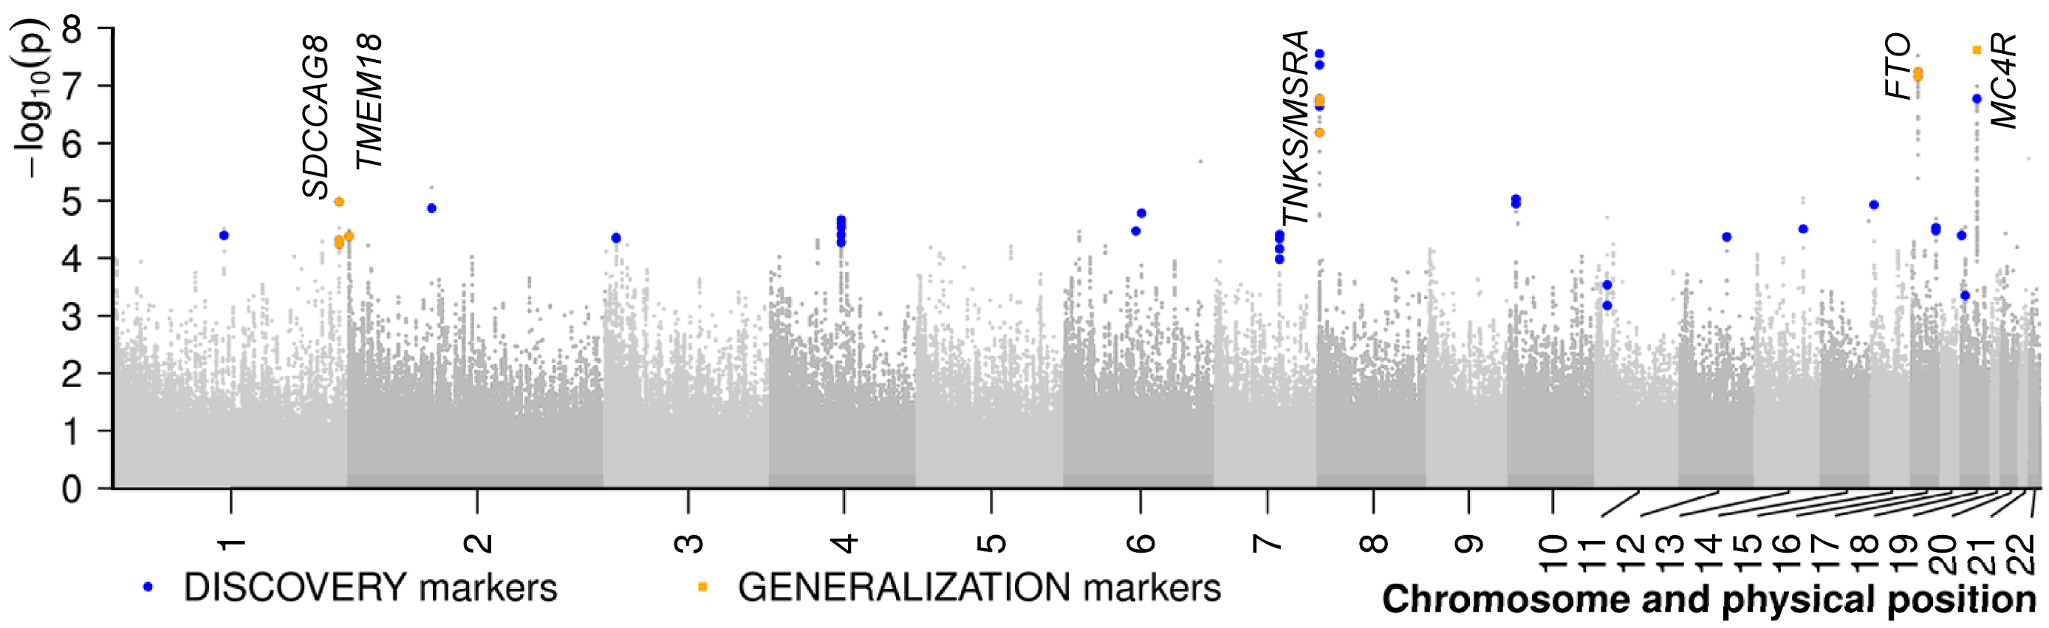 Results of the meta-analysis of two genome-wide association studies for early-onset extreme obesity.